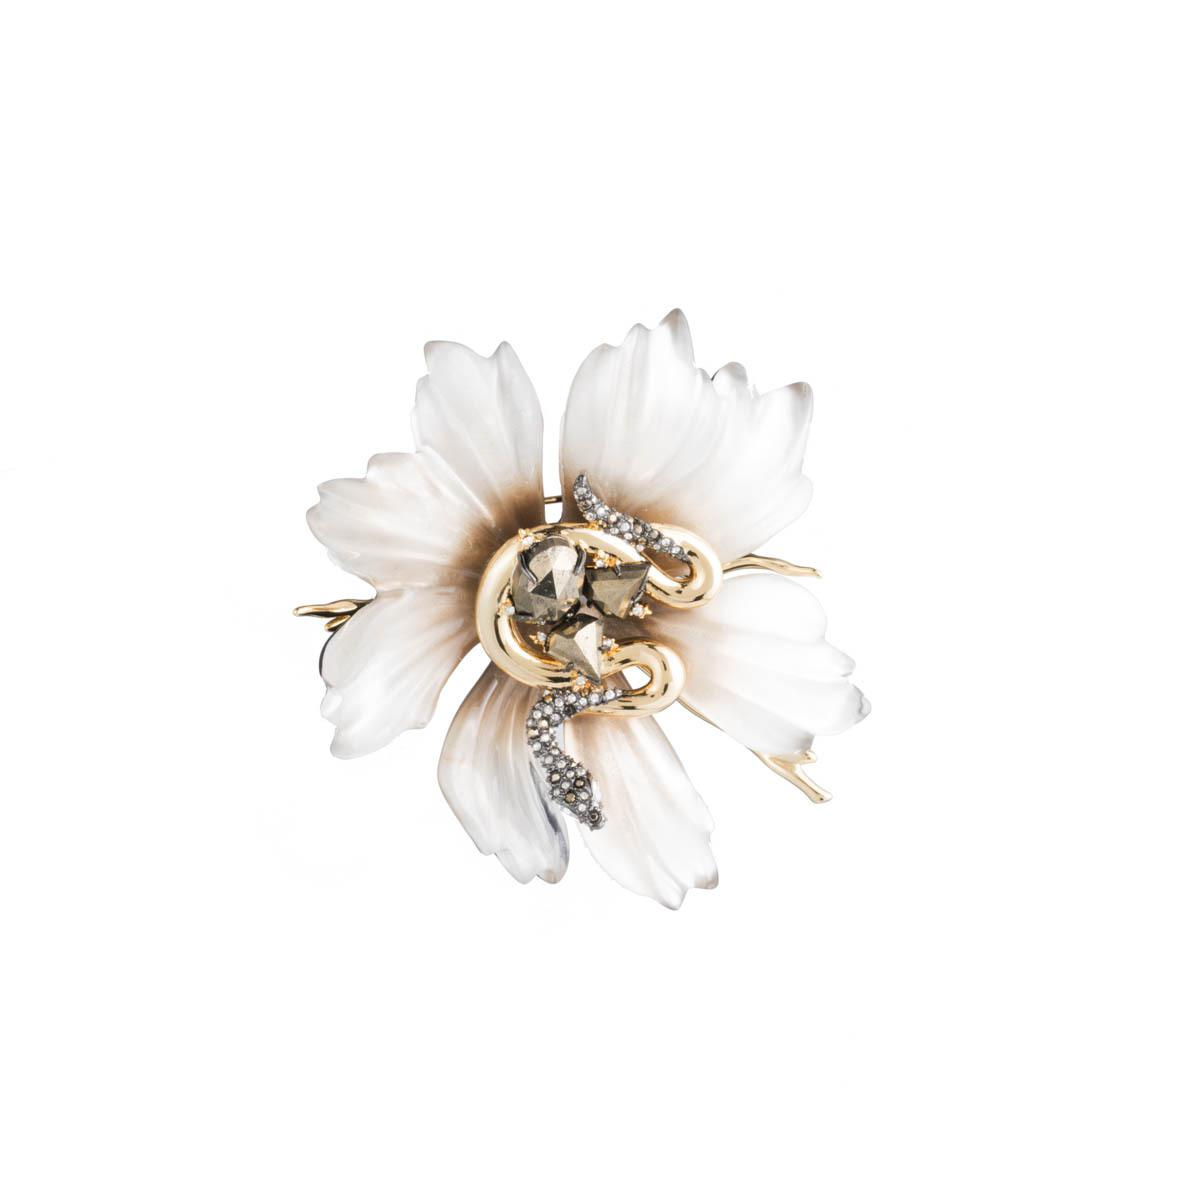 Alexis Bittar Lucite Flower & Crystal Snake Pin 5QrfIMum